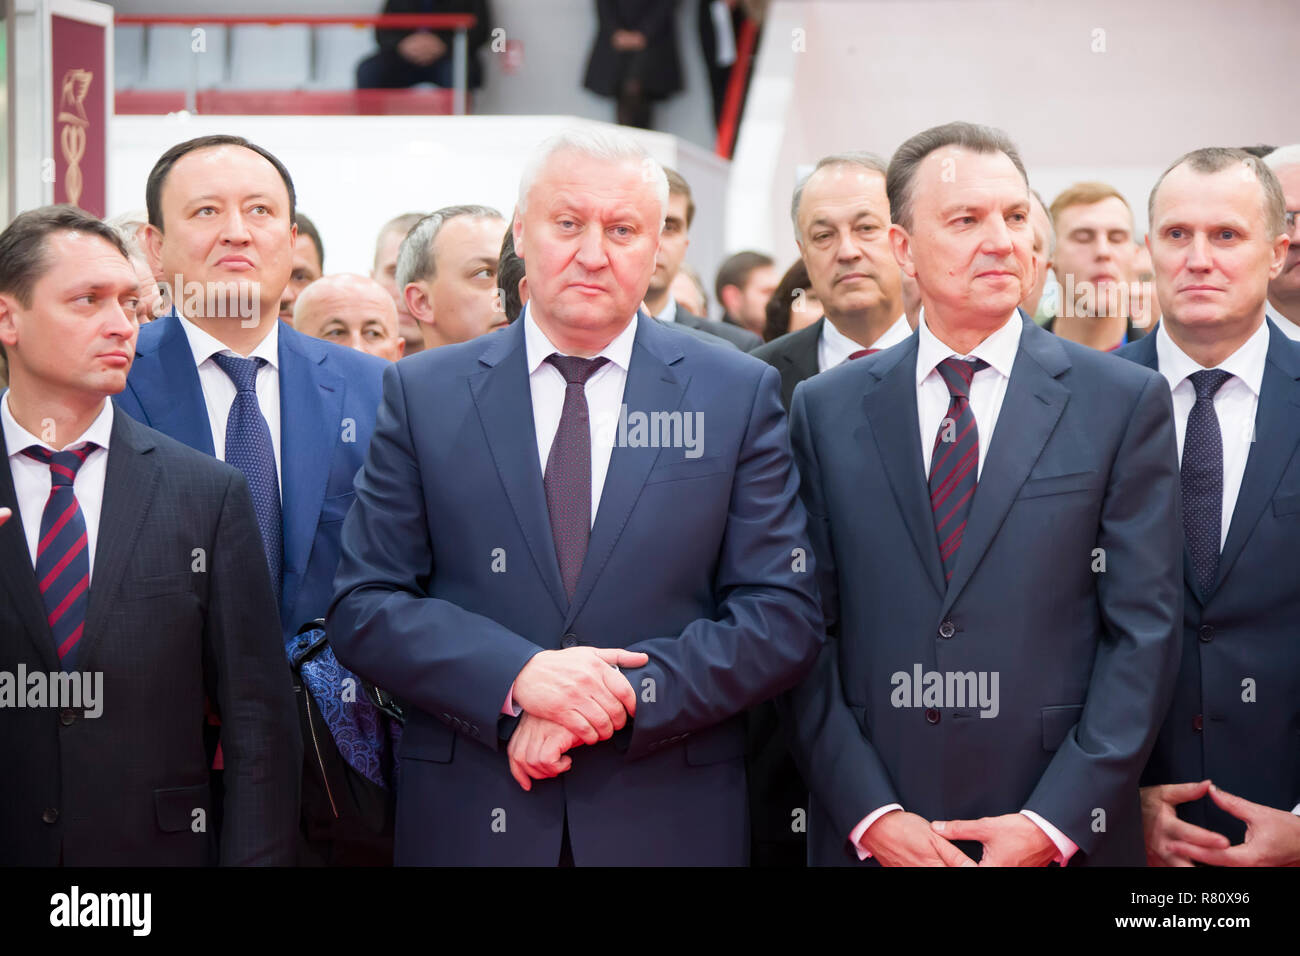 Belarus is the city of Gomel on October 25, 2018. Exhibition of products of national economy.Older men in suits. Politicians.Chiefs - Stock Image